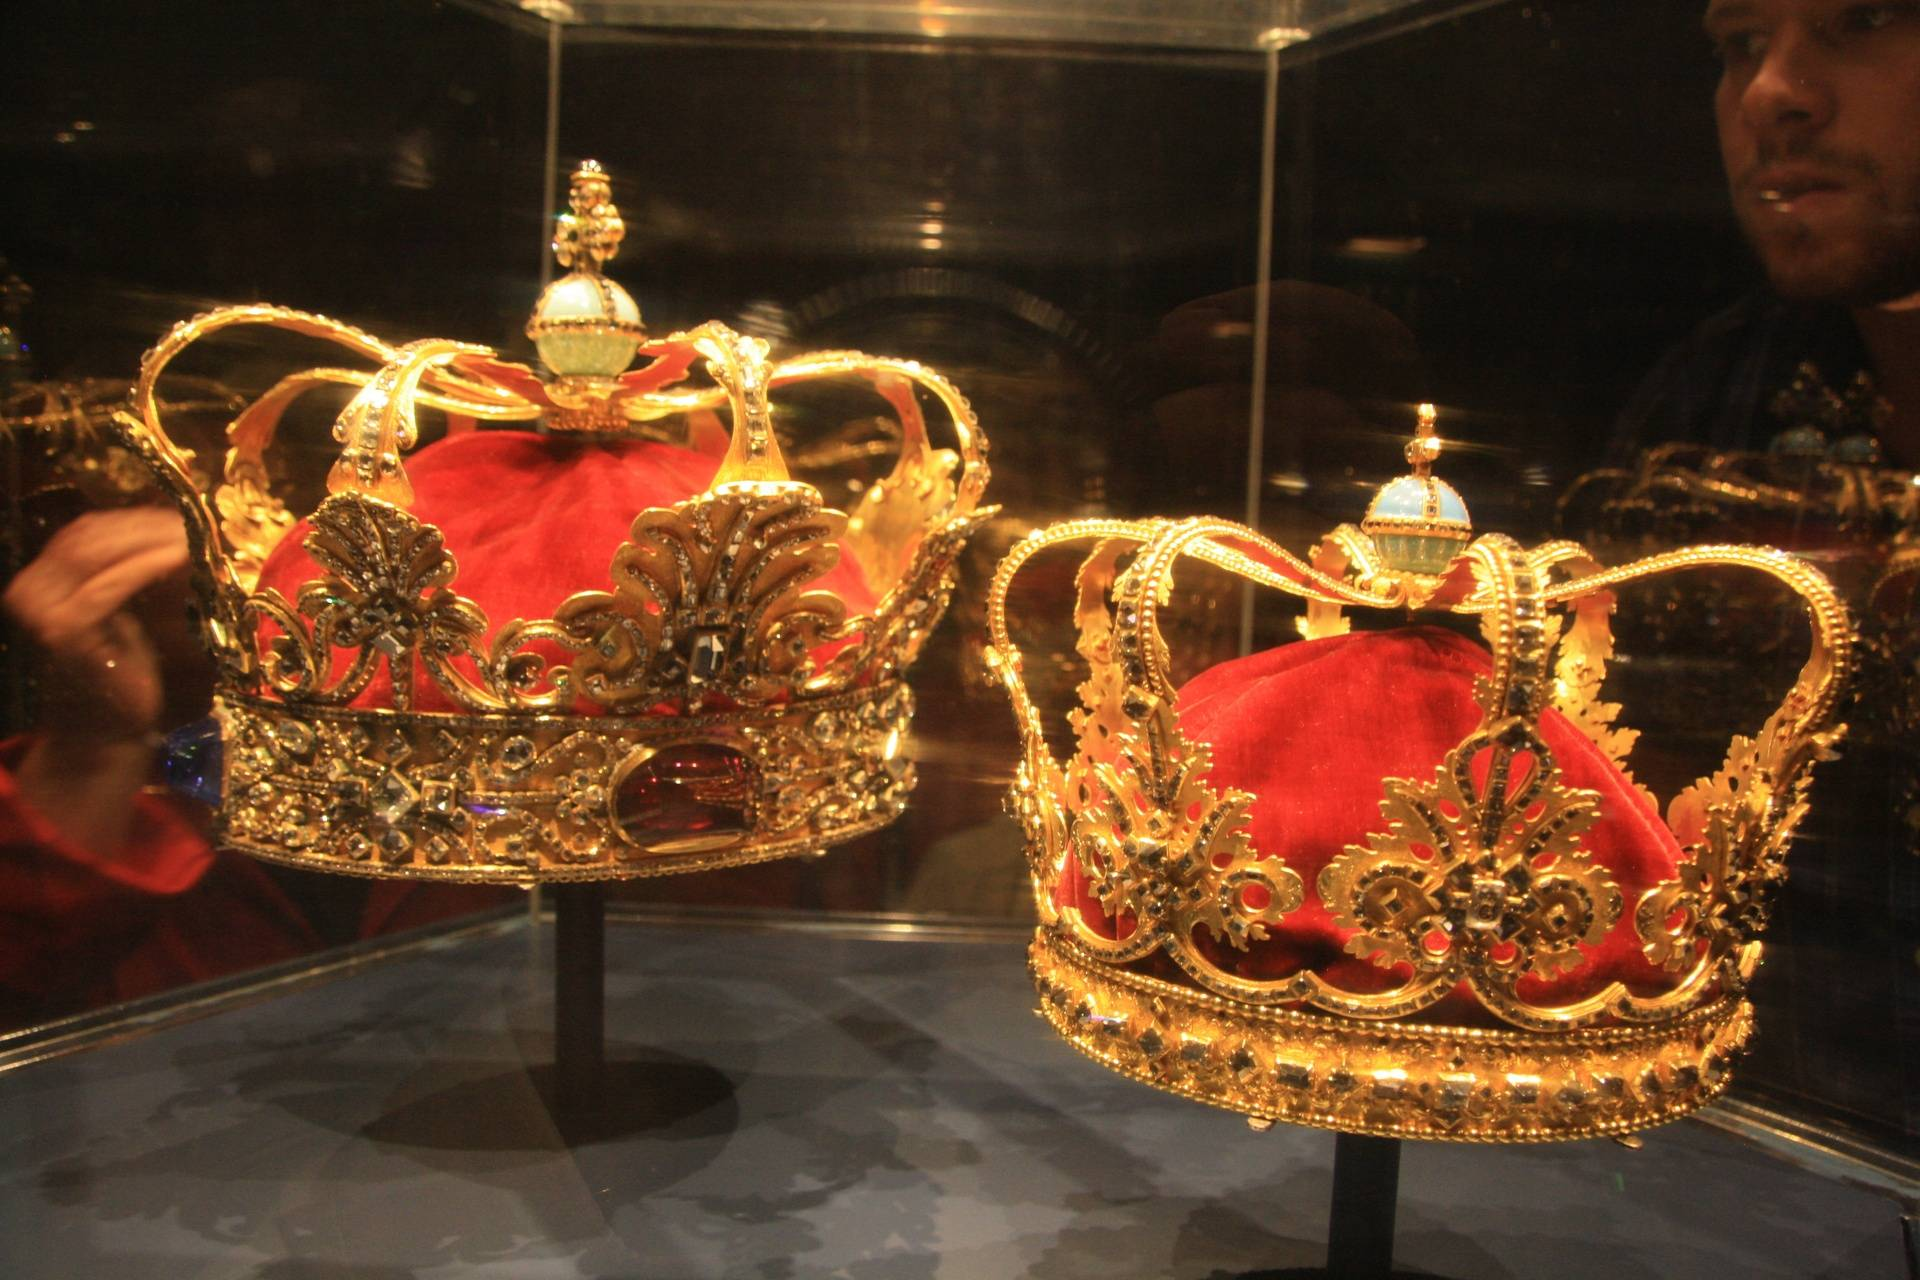 Crown Jewels, Copenhagen, Denmark